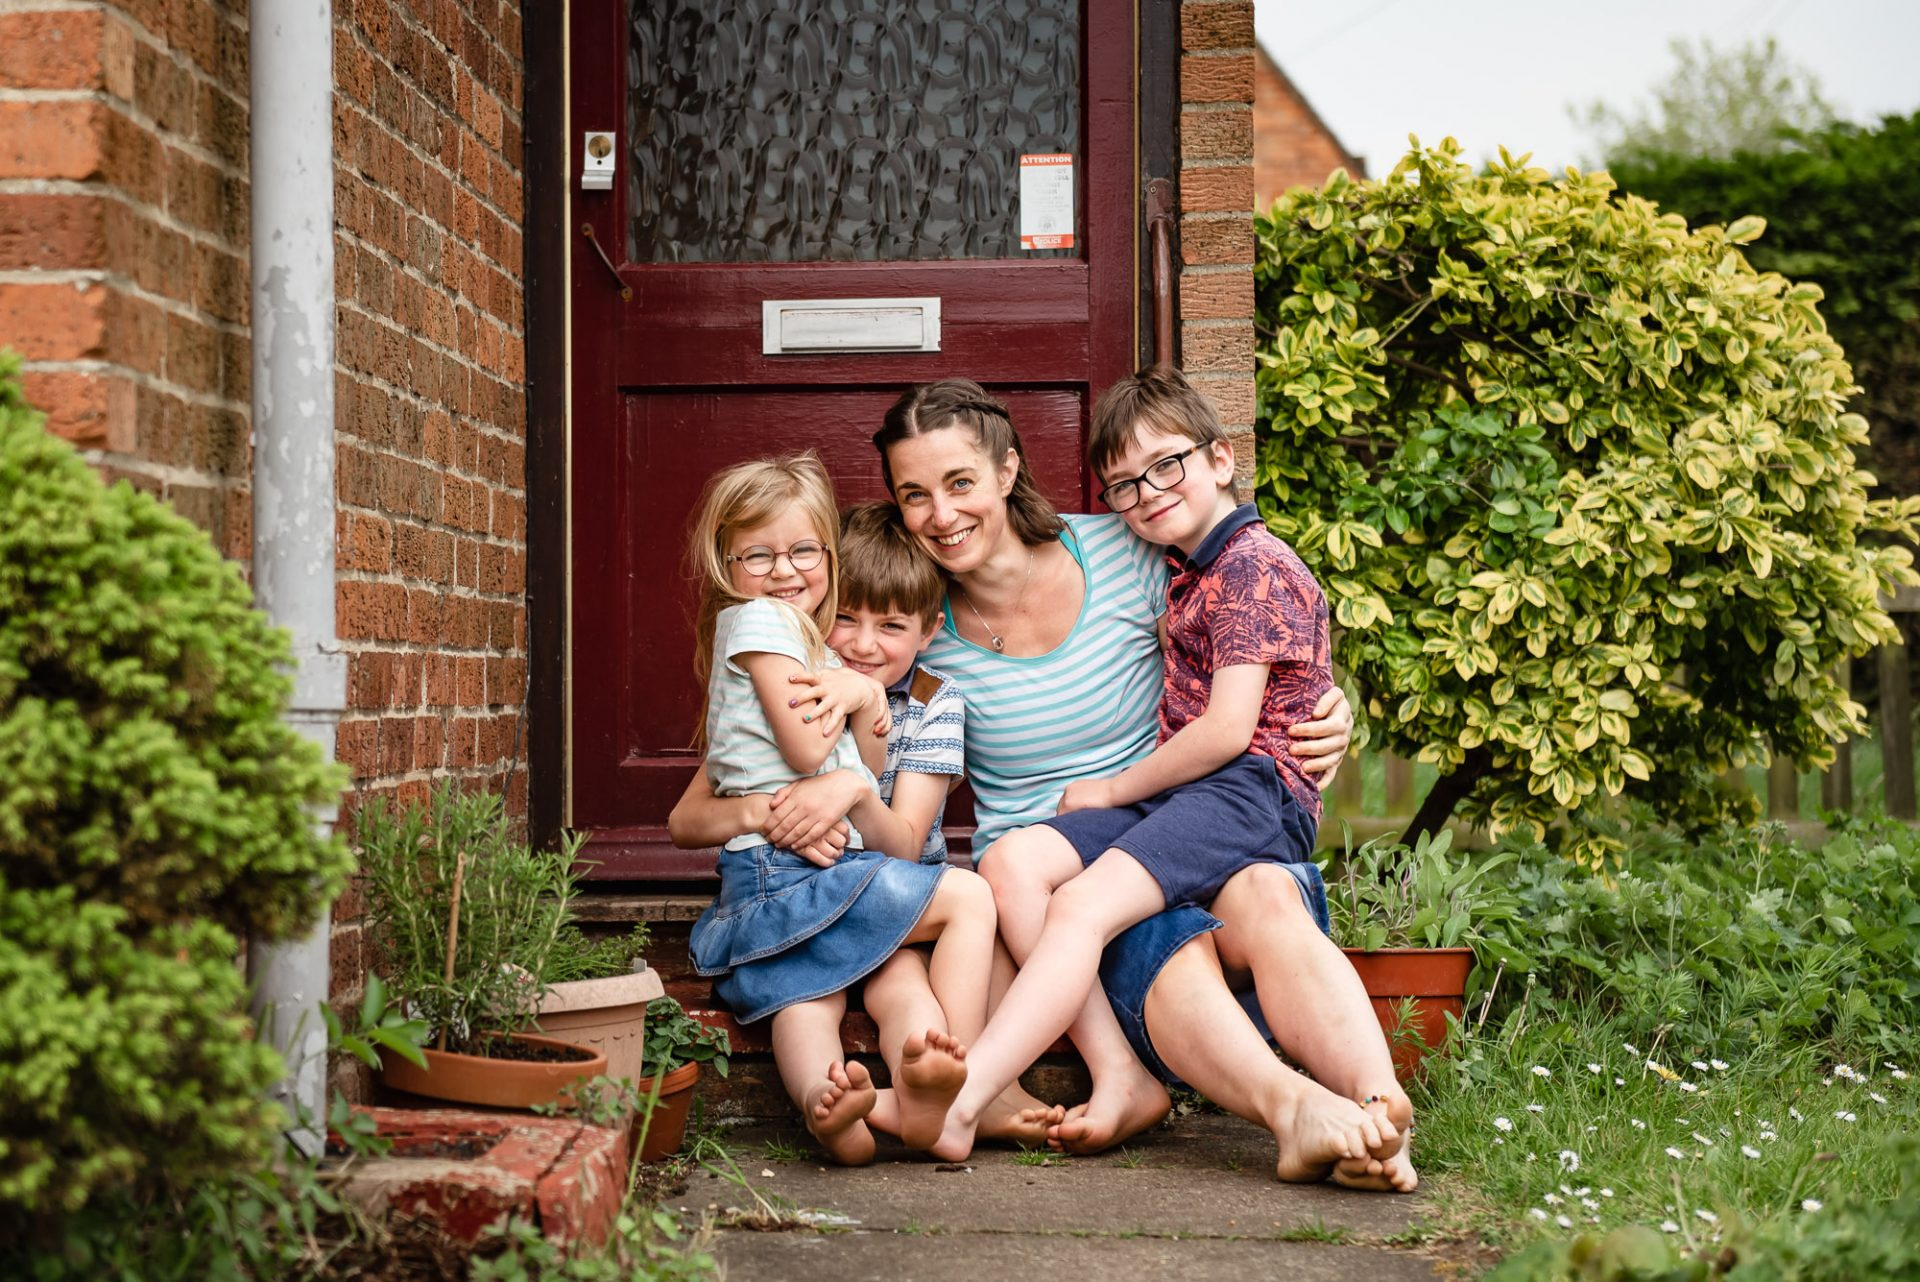 'On the Doorstep' - COVID-19 Photography Project